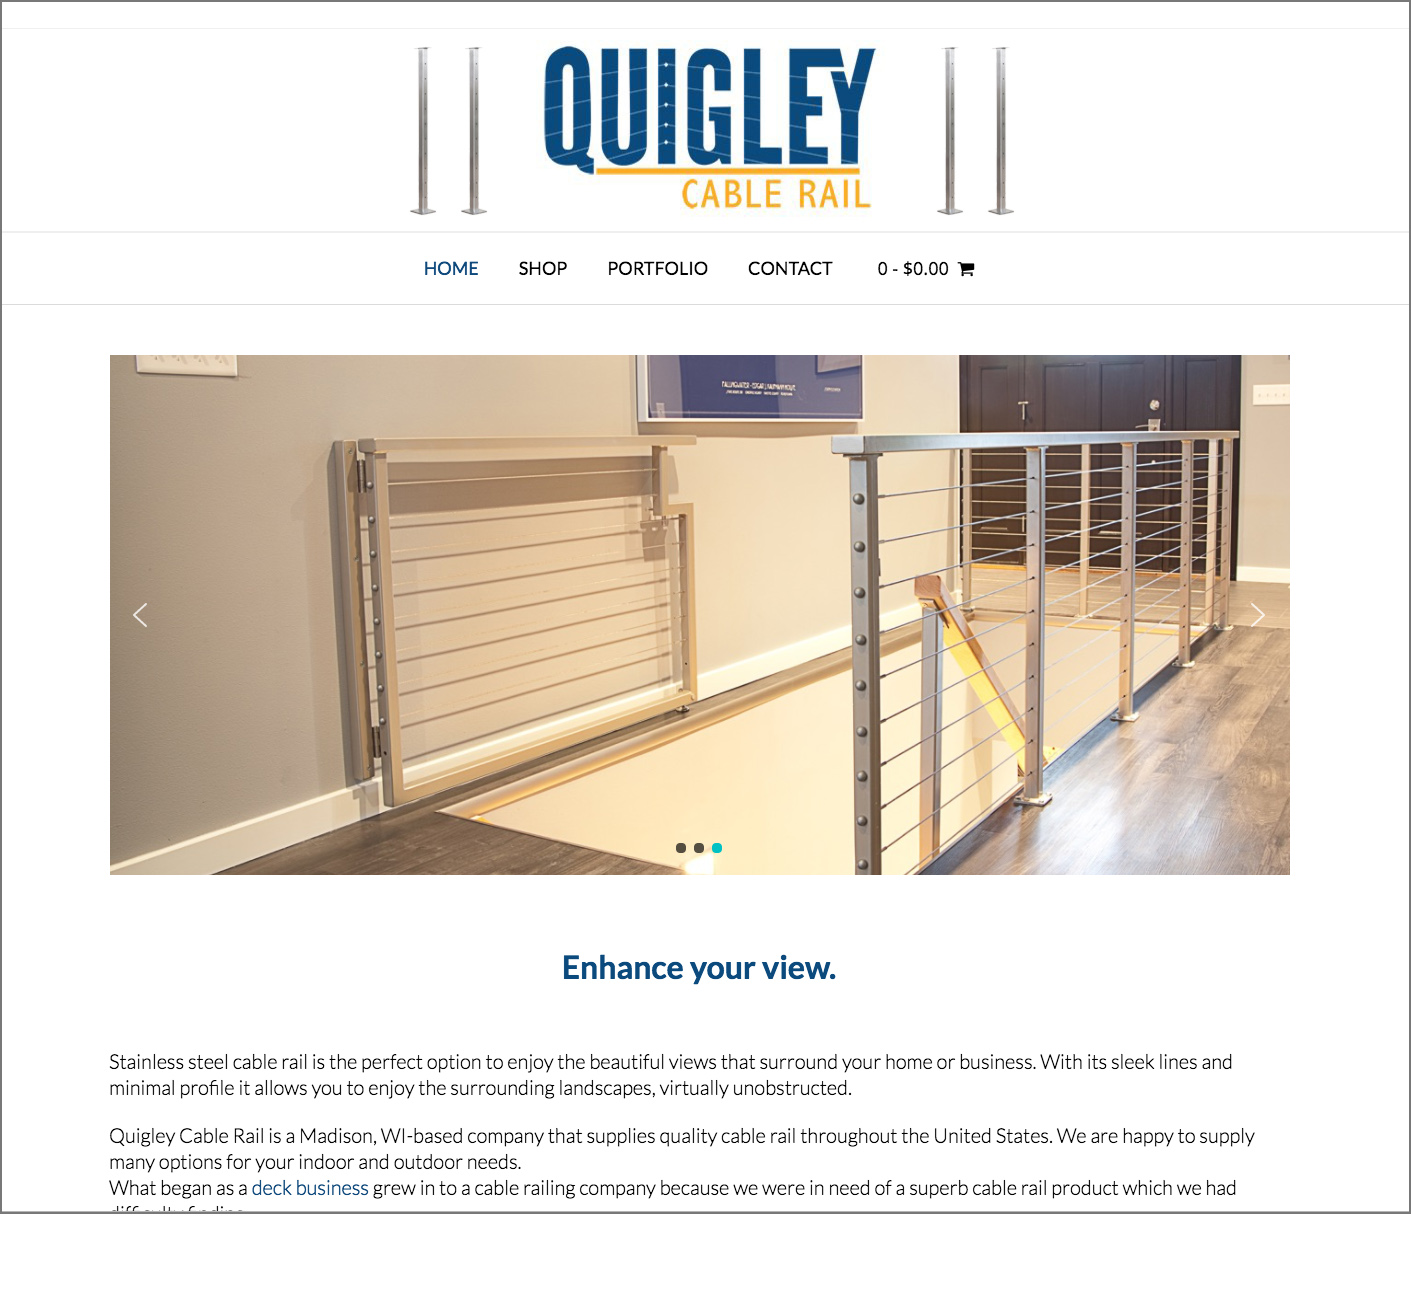 QuigleyCableRail.com